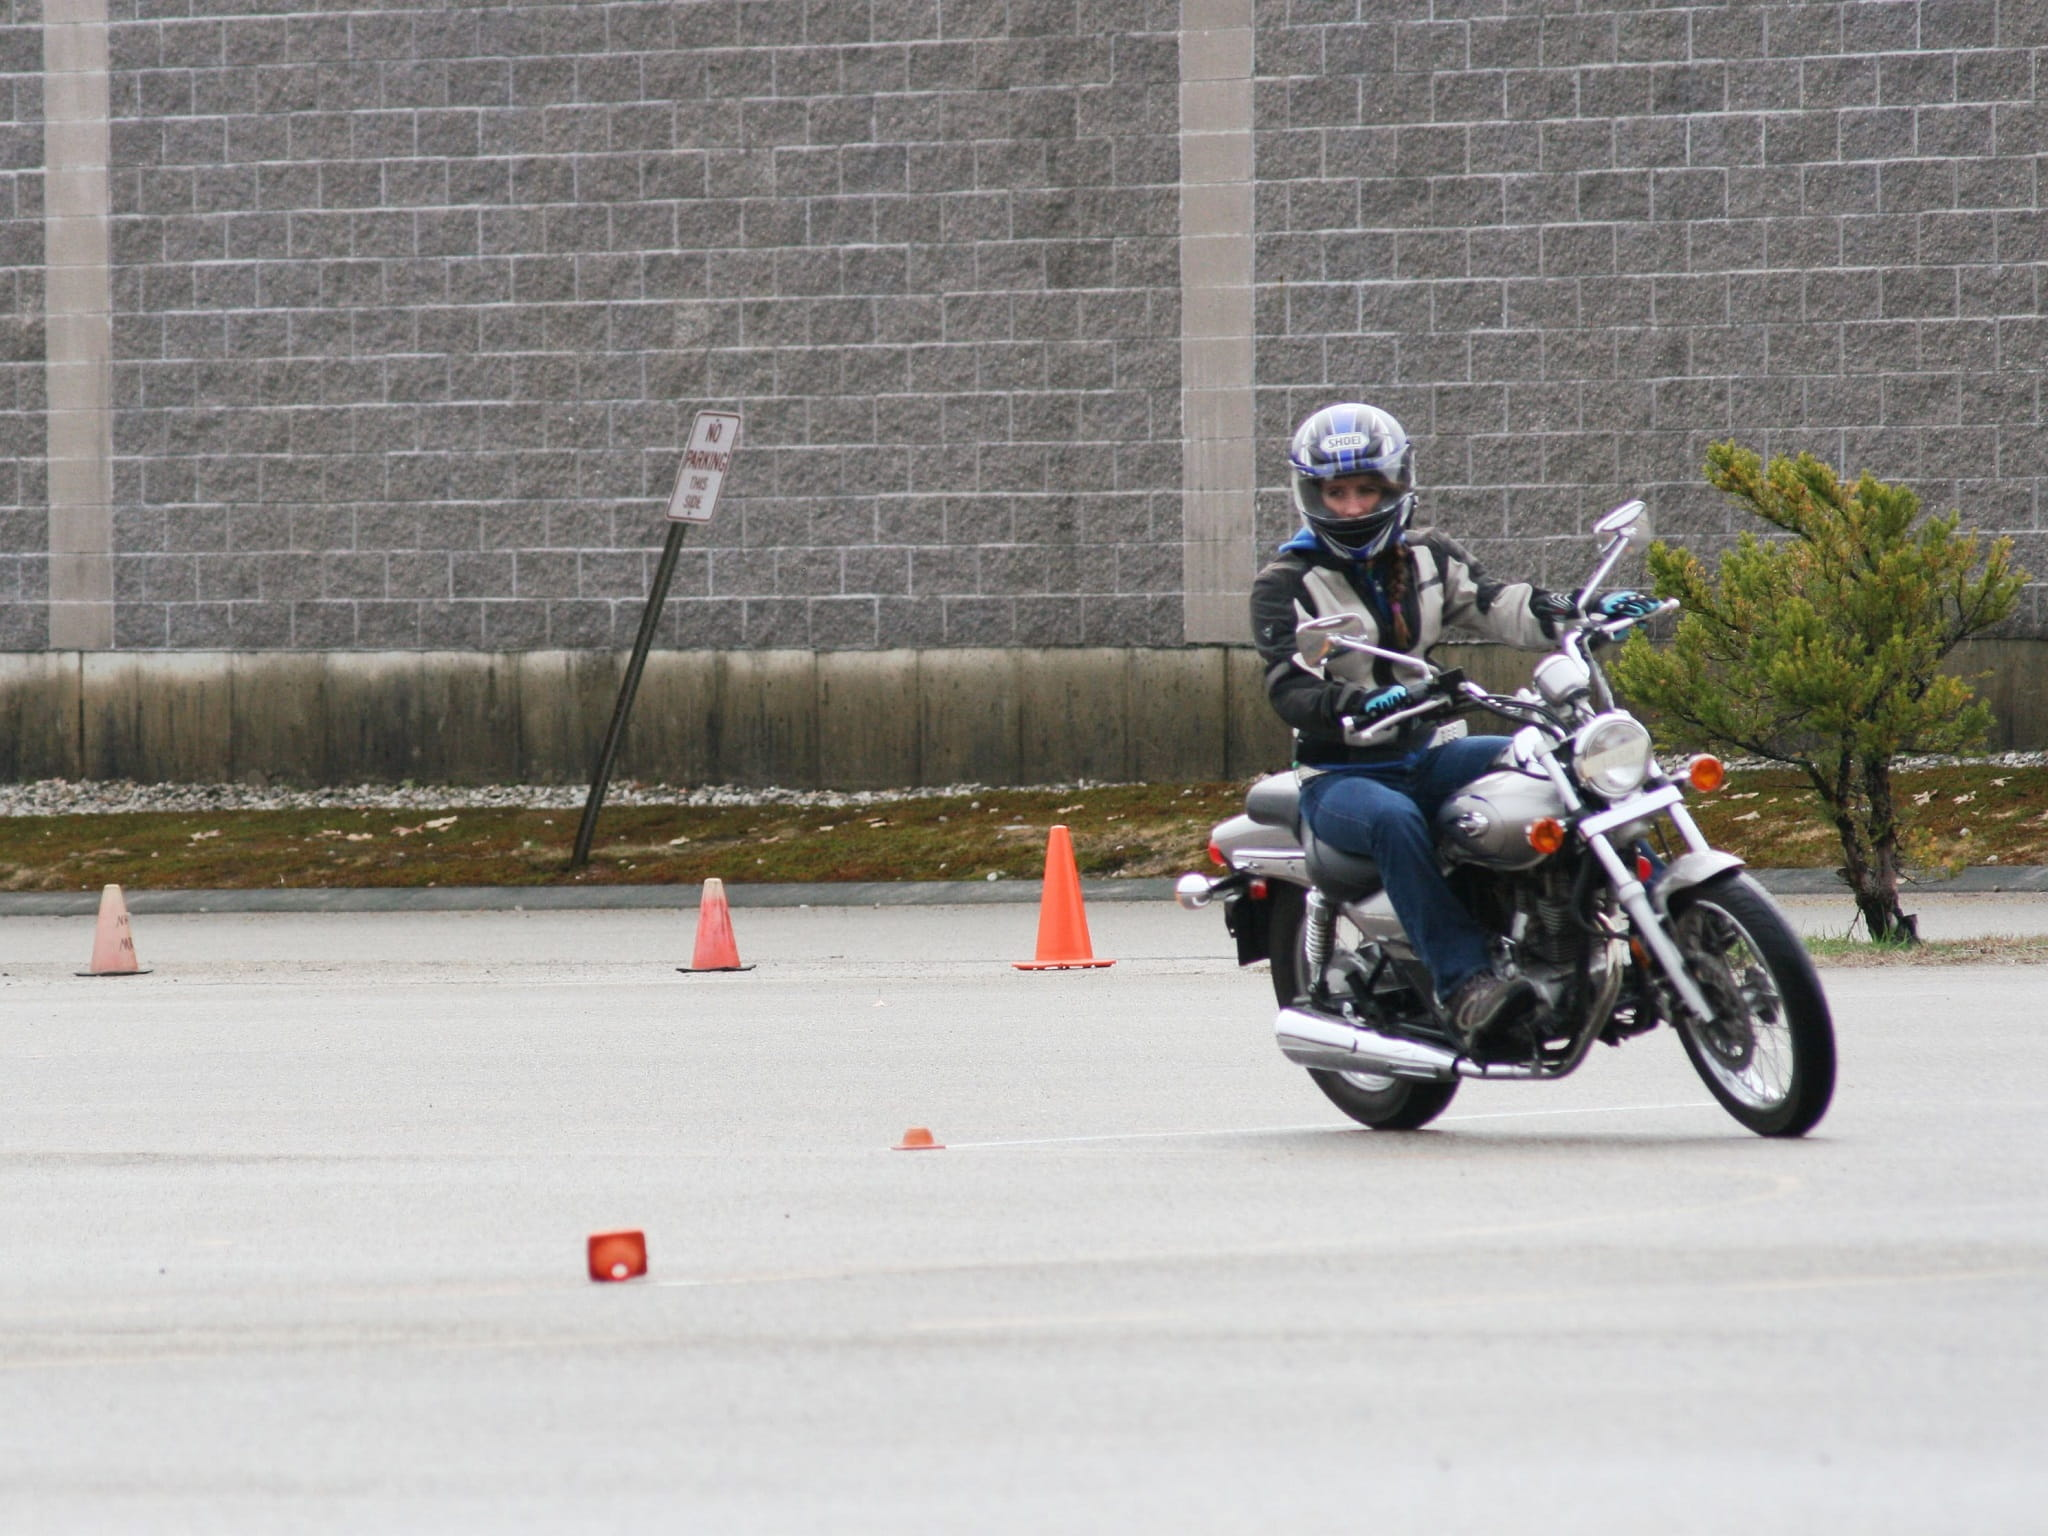 Take A Motorcycle Safety Course Dairyland